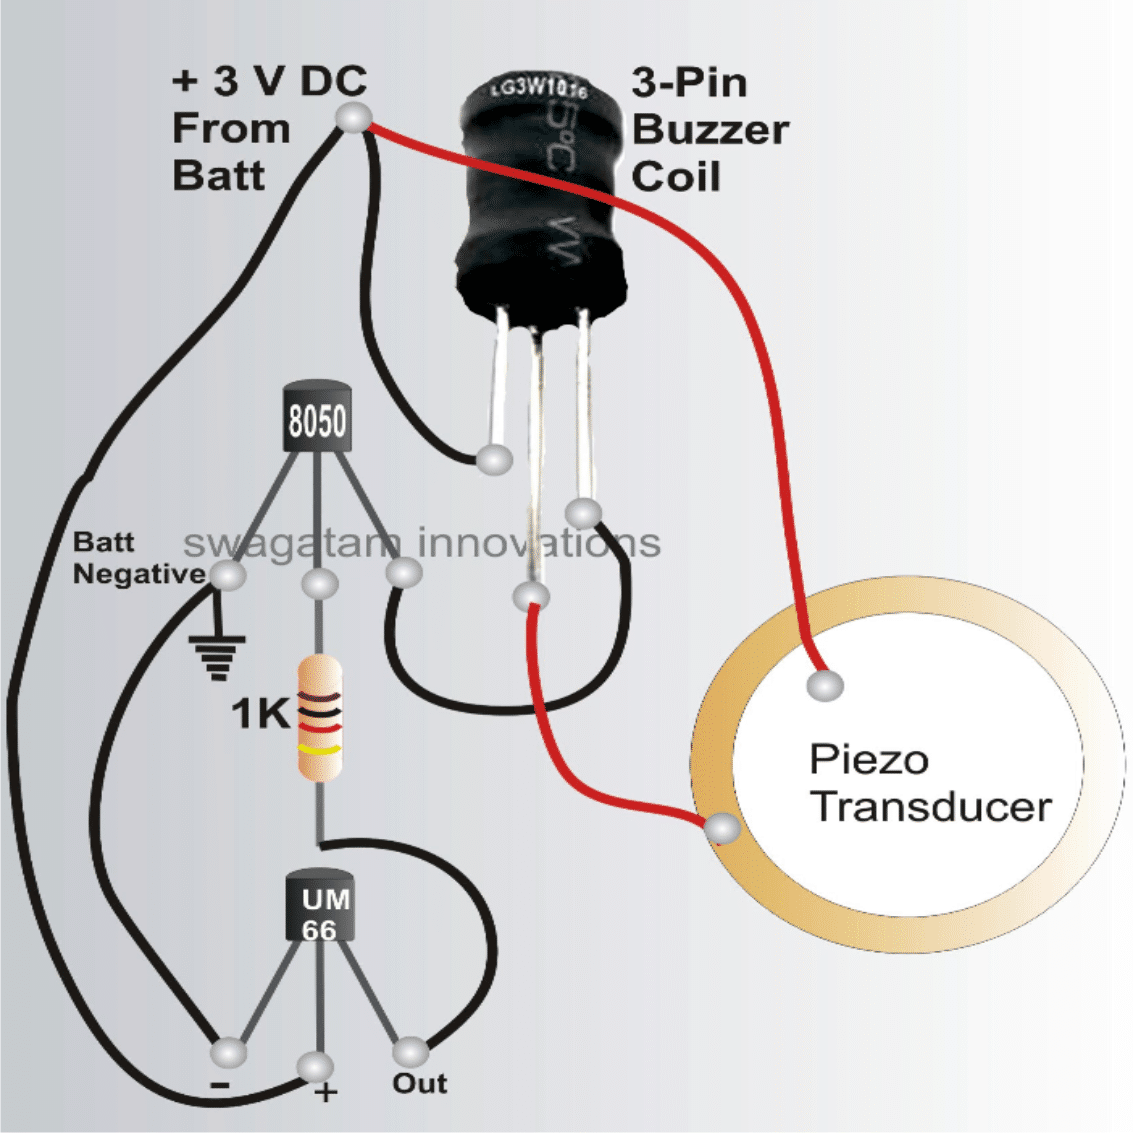 bicycle musical horn circuit using 27mm piezo transducer and UM66 tone generator